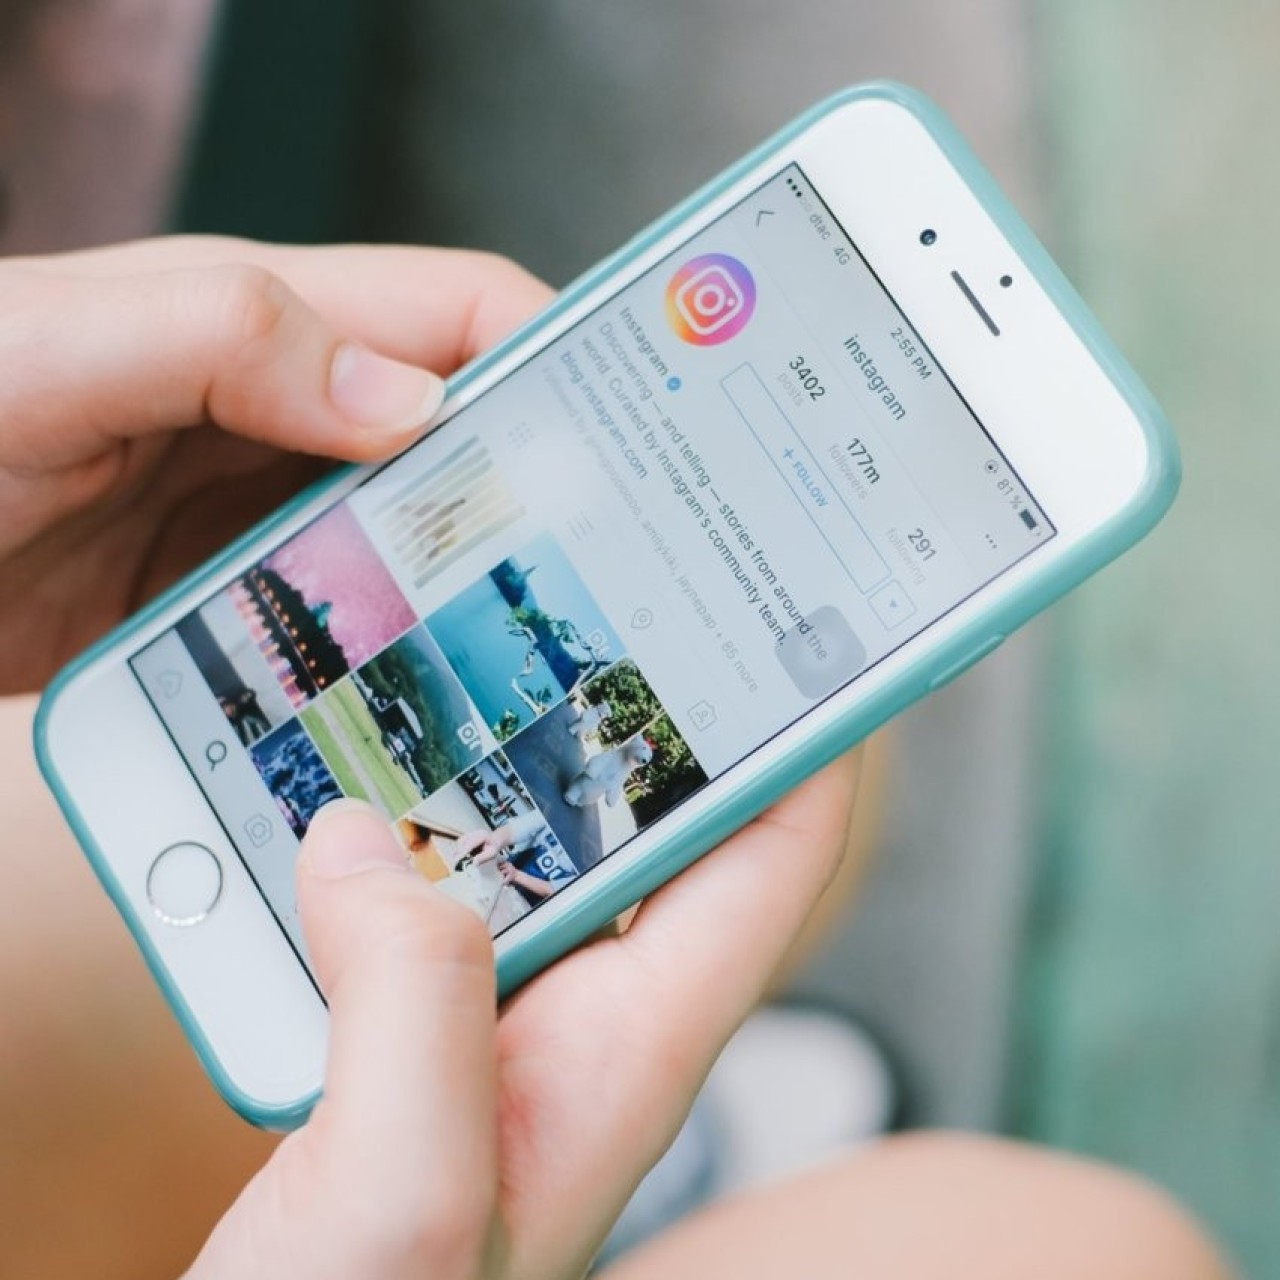 Instagram, Snapchat, YouTube: What the iPhone means to Gen Z